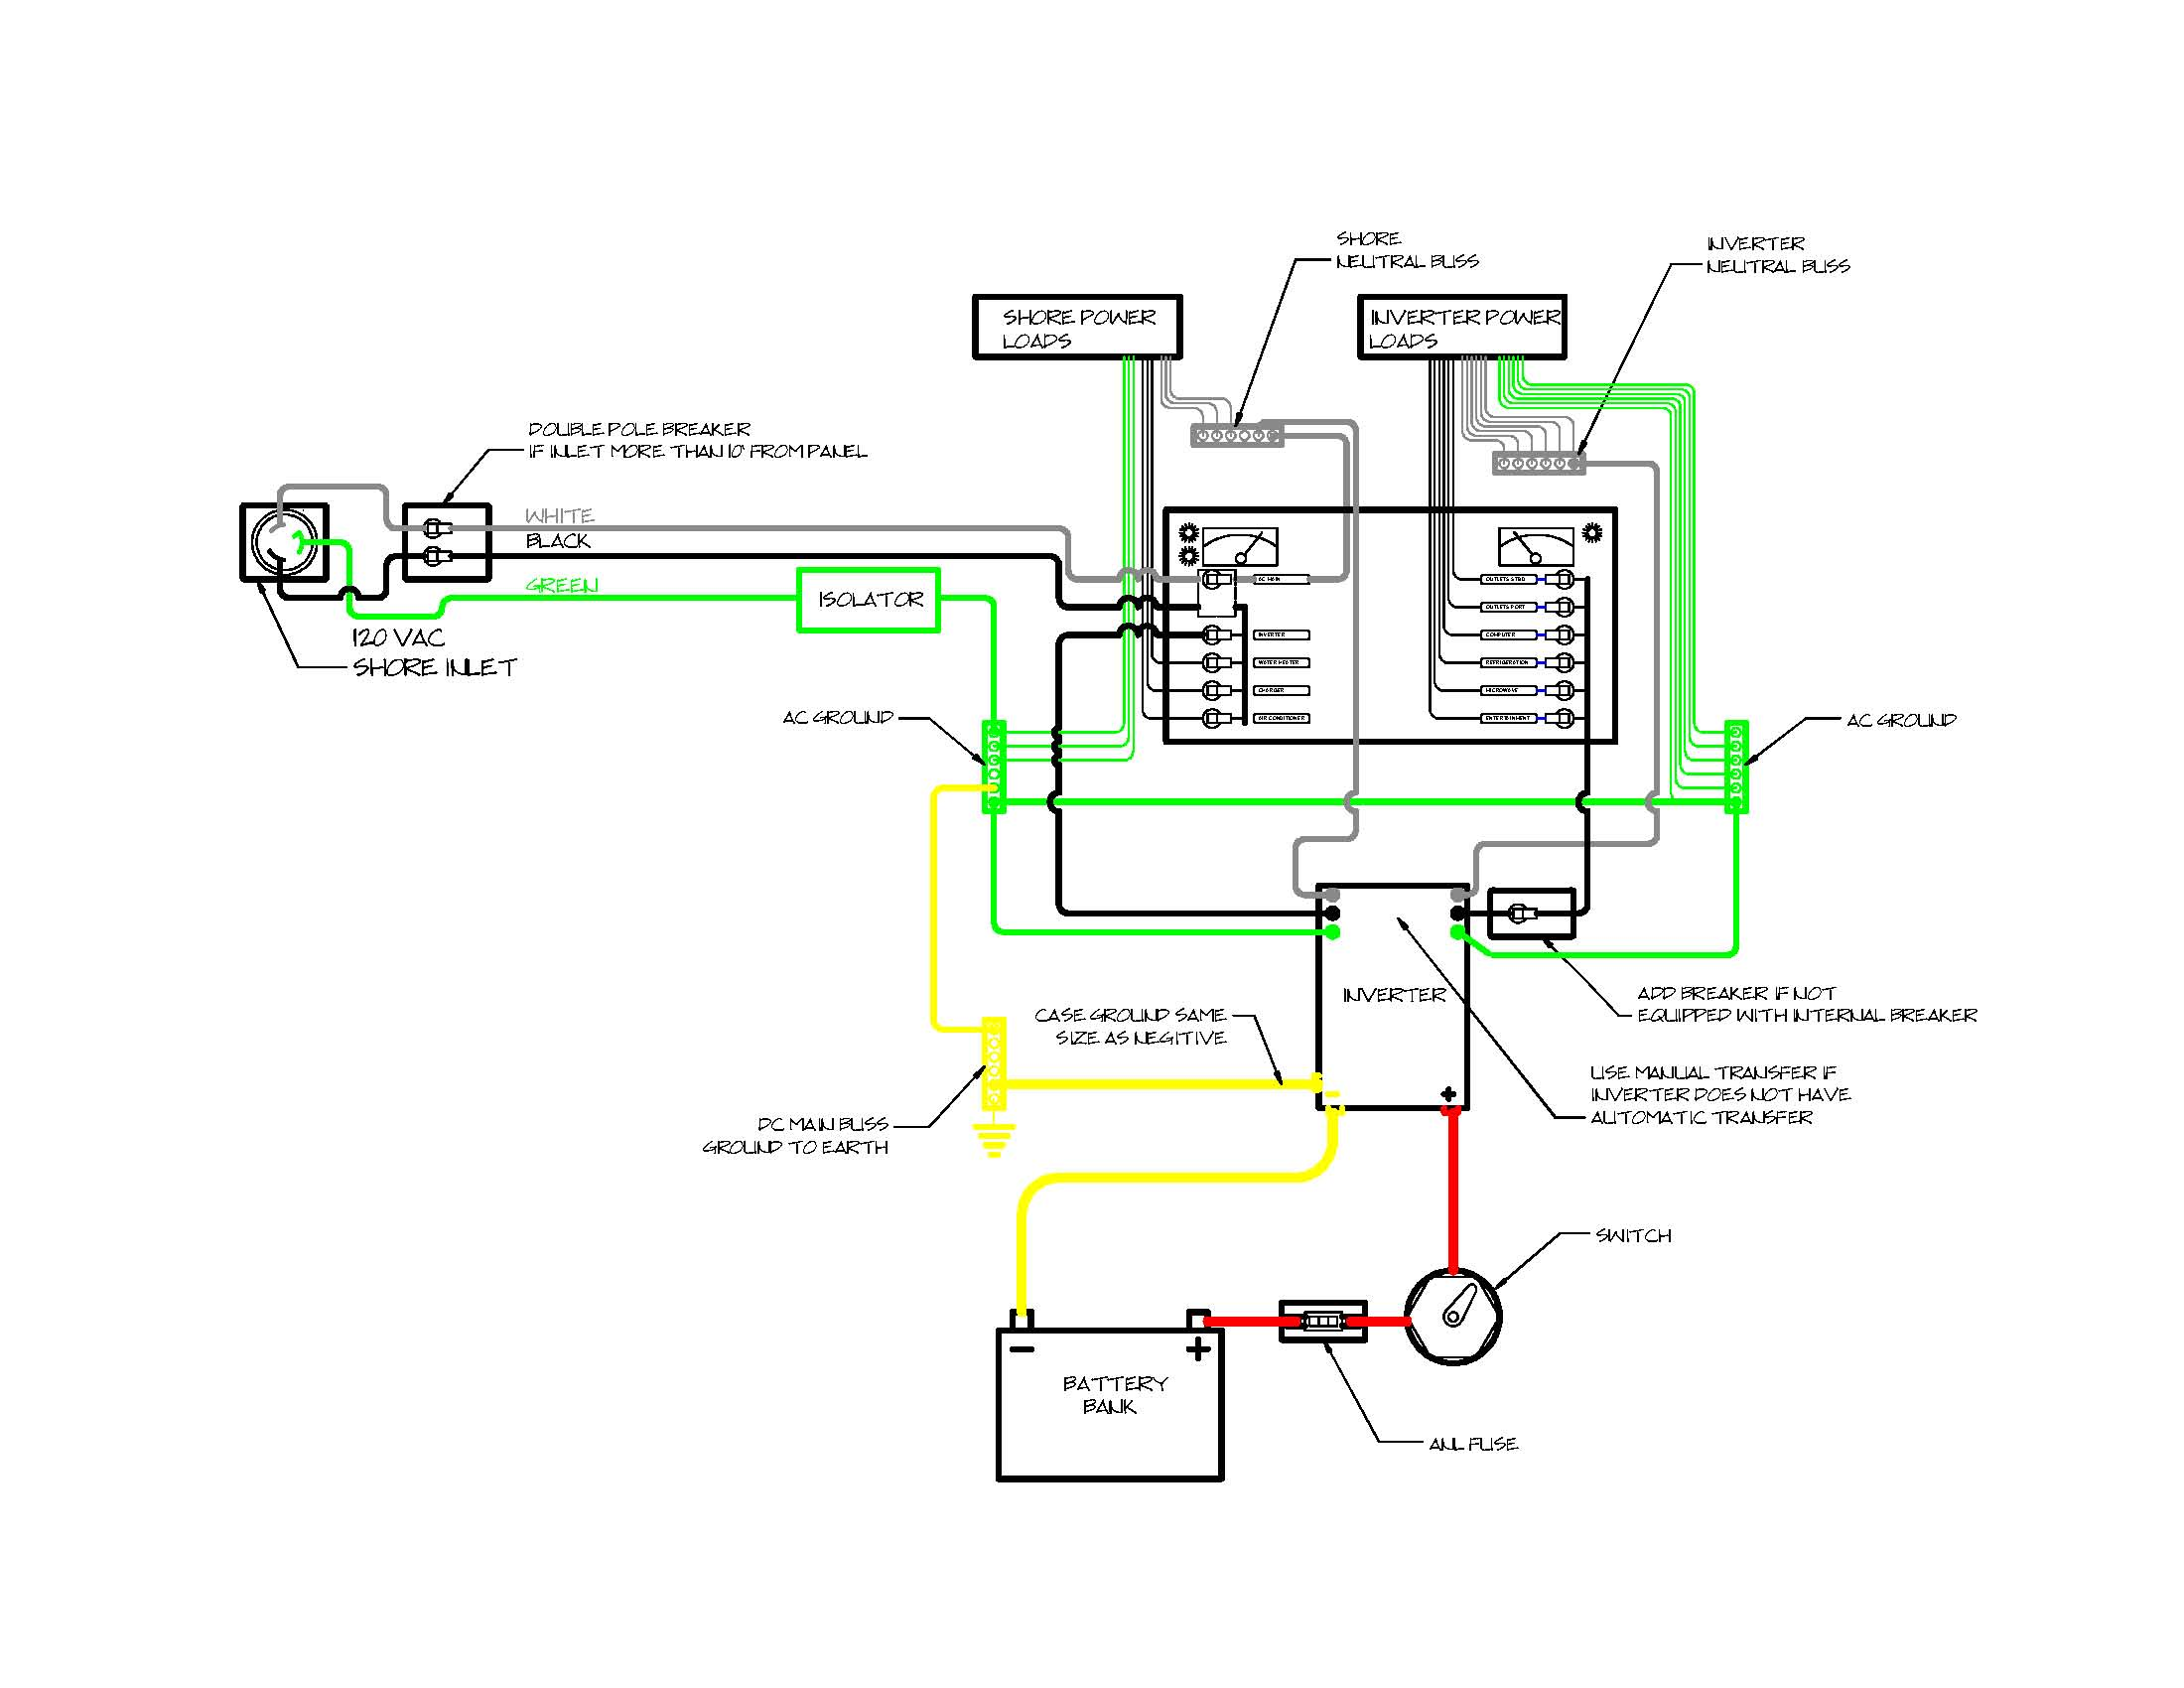 Marine inverter wiring diagram trusted wiring diagrams understanding inverter installations project boat zen boat inverter wiring diagram inverter wiring simplejpg asfbconference2016 Choice Image